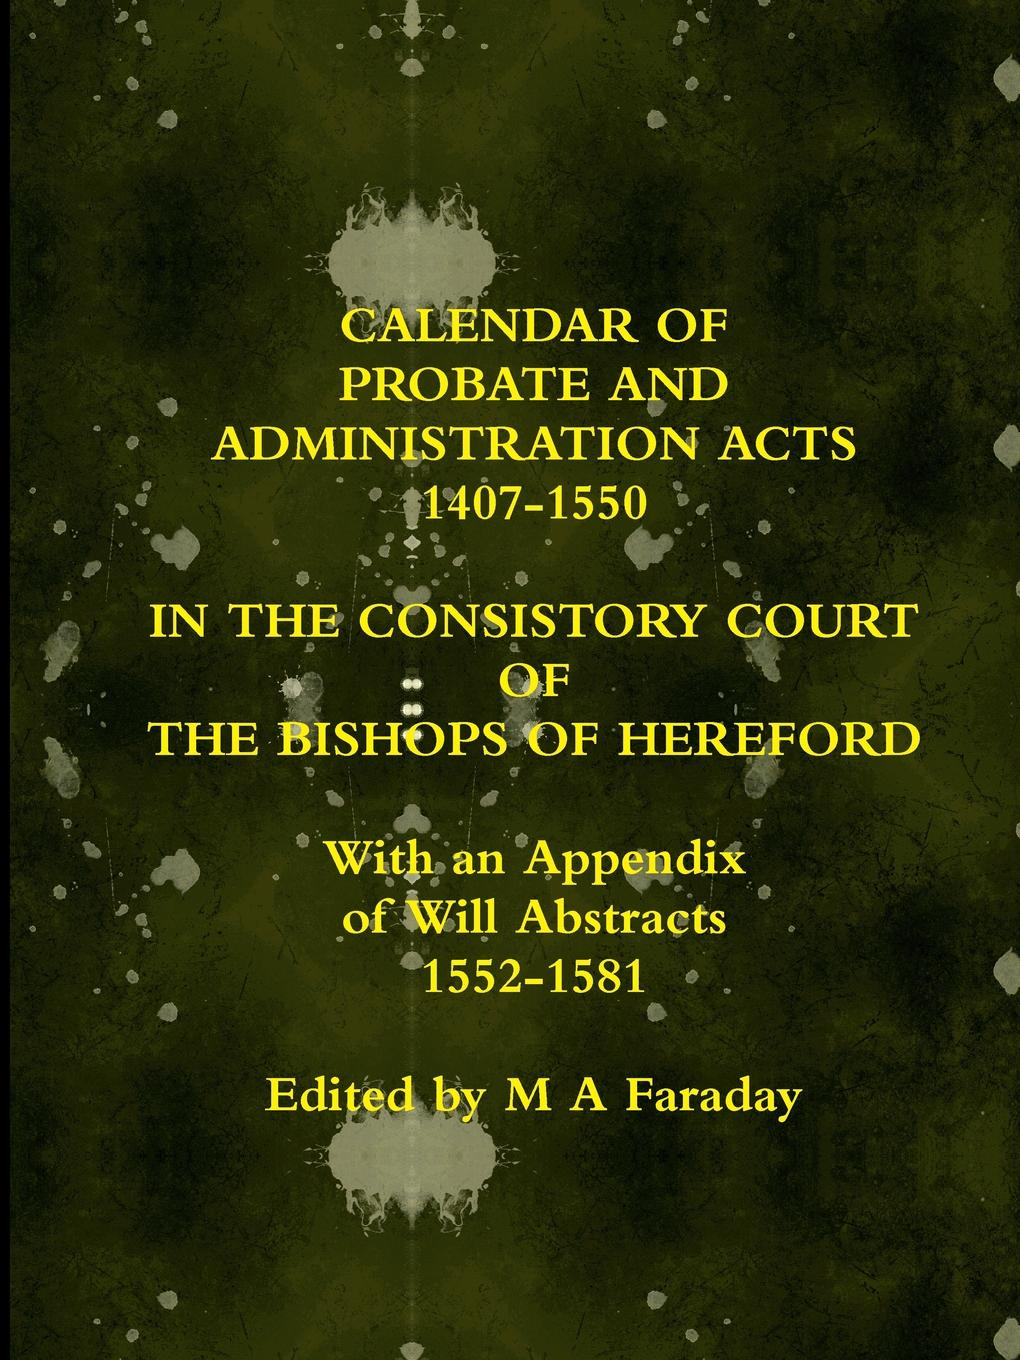 M A Faraday CALENDAR OF PROBATE AND ADMINISTRATION ACTS 1407-1550 IN THE CONSISTORY COURT OF THE BISHOPS OF HEREFORD russell fishkind j aarp probate wars of the rich and famous an insider s guide to estate and probate litigation